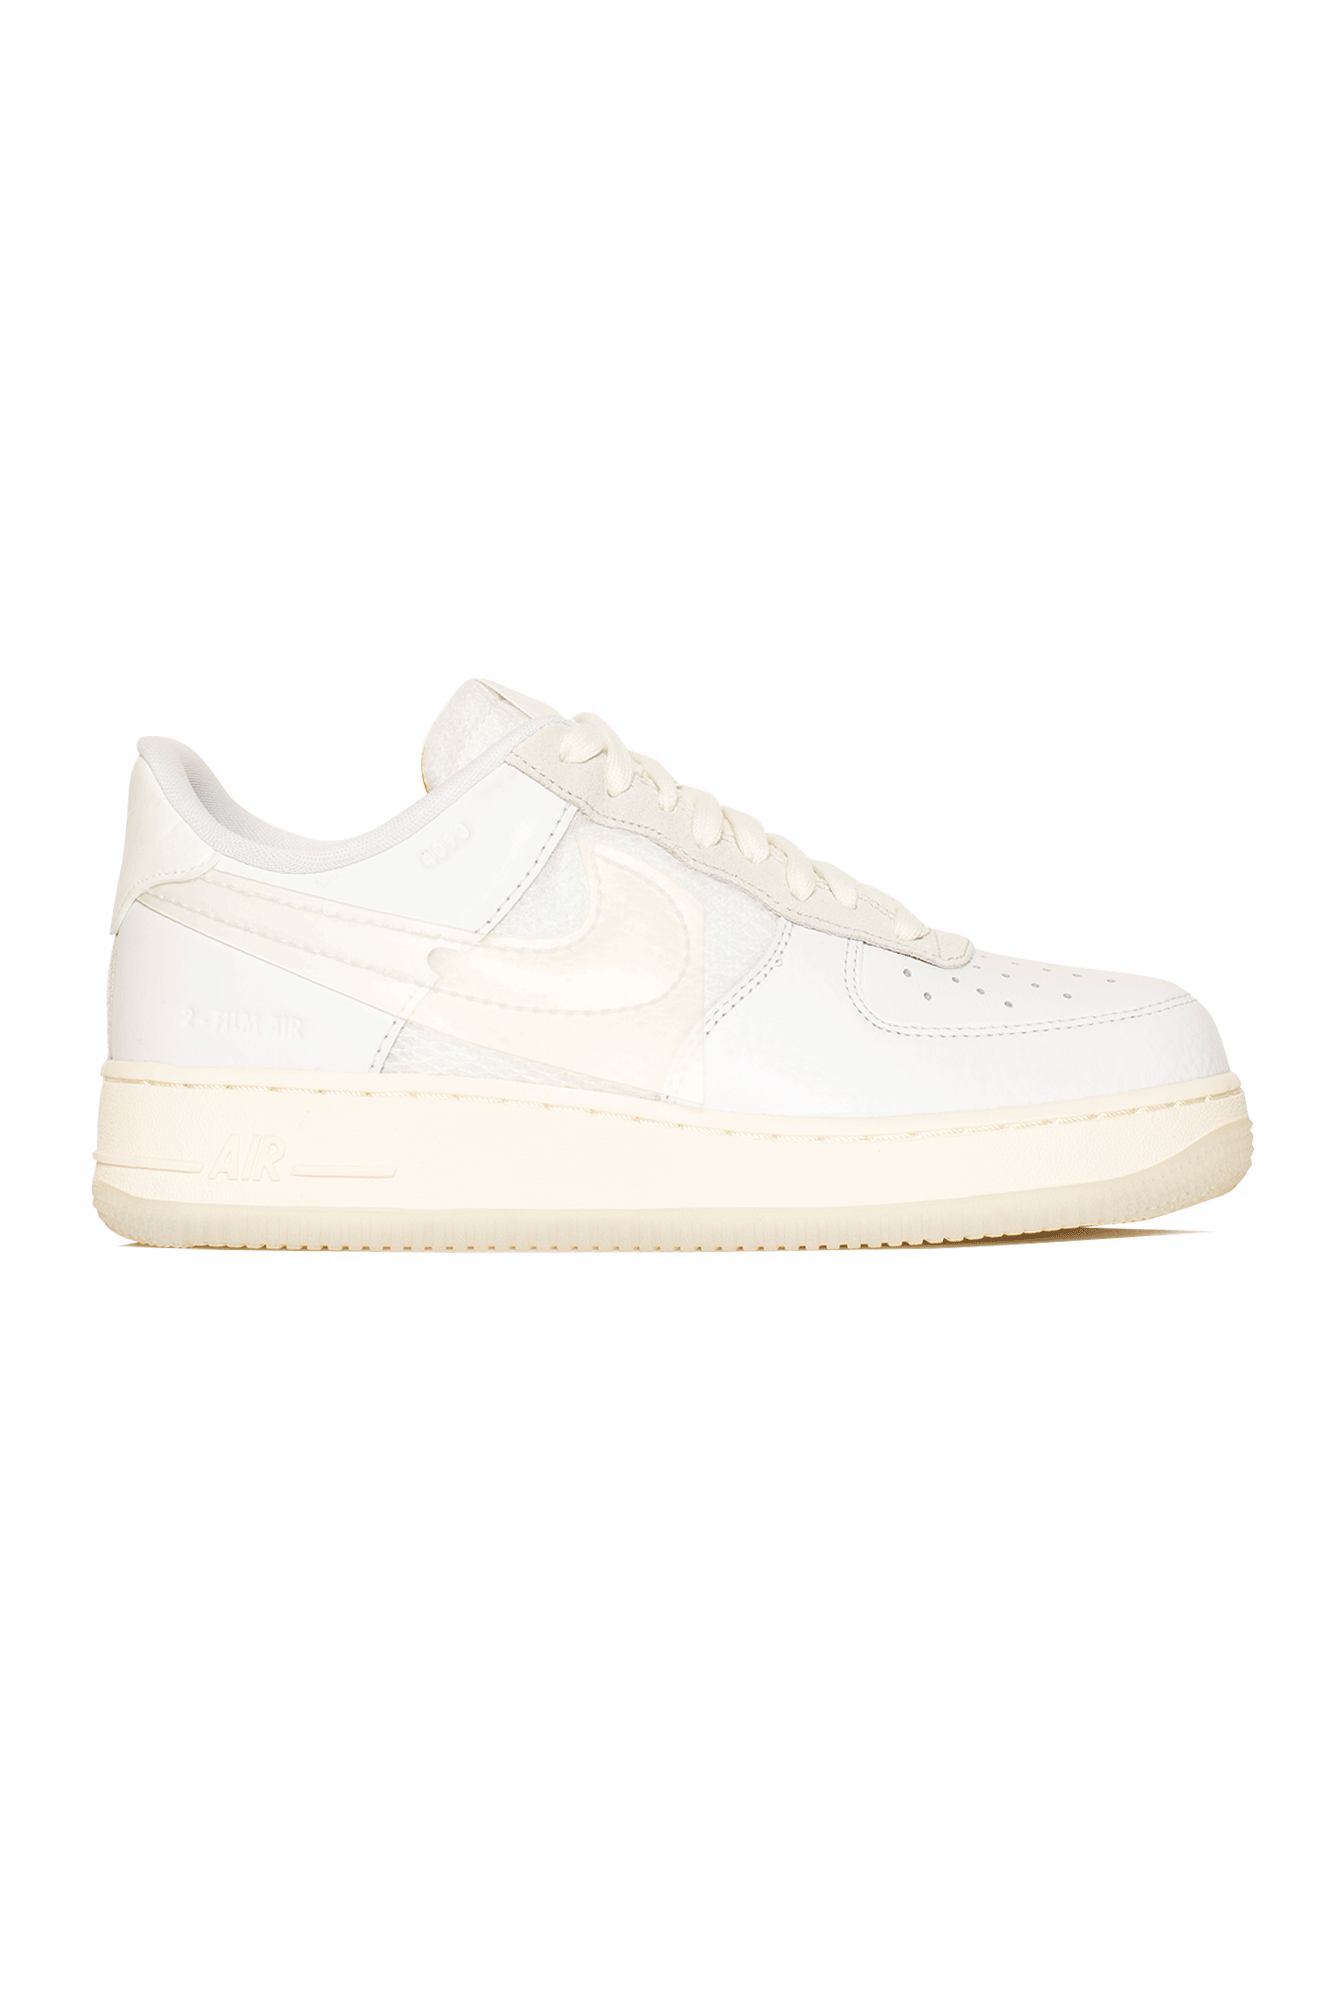 Nike Sneakers Air Force1 LV8 White CV3040-#000#100#6 - One Block Down